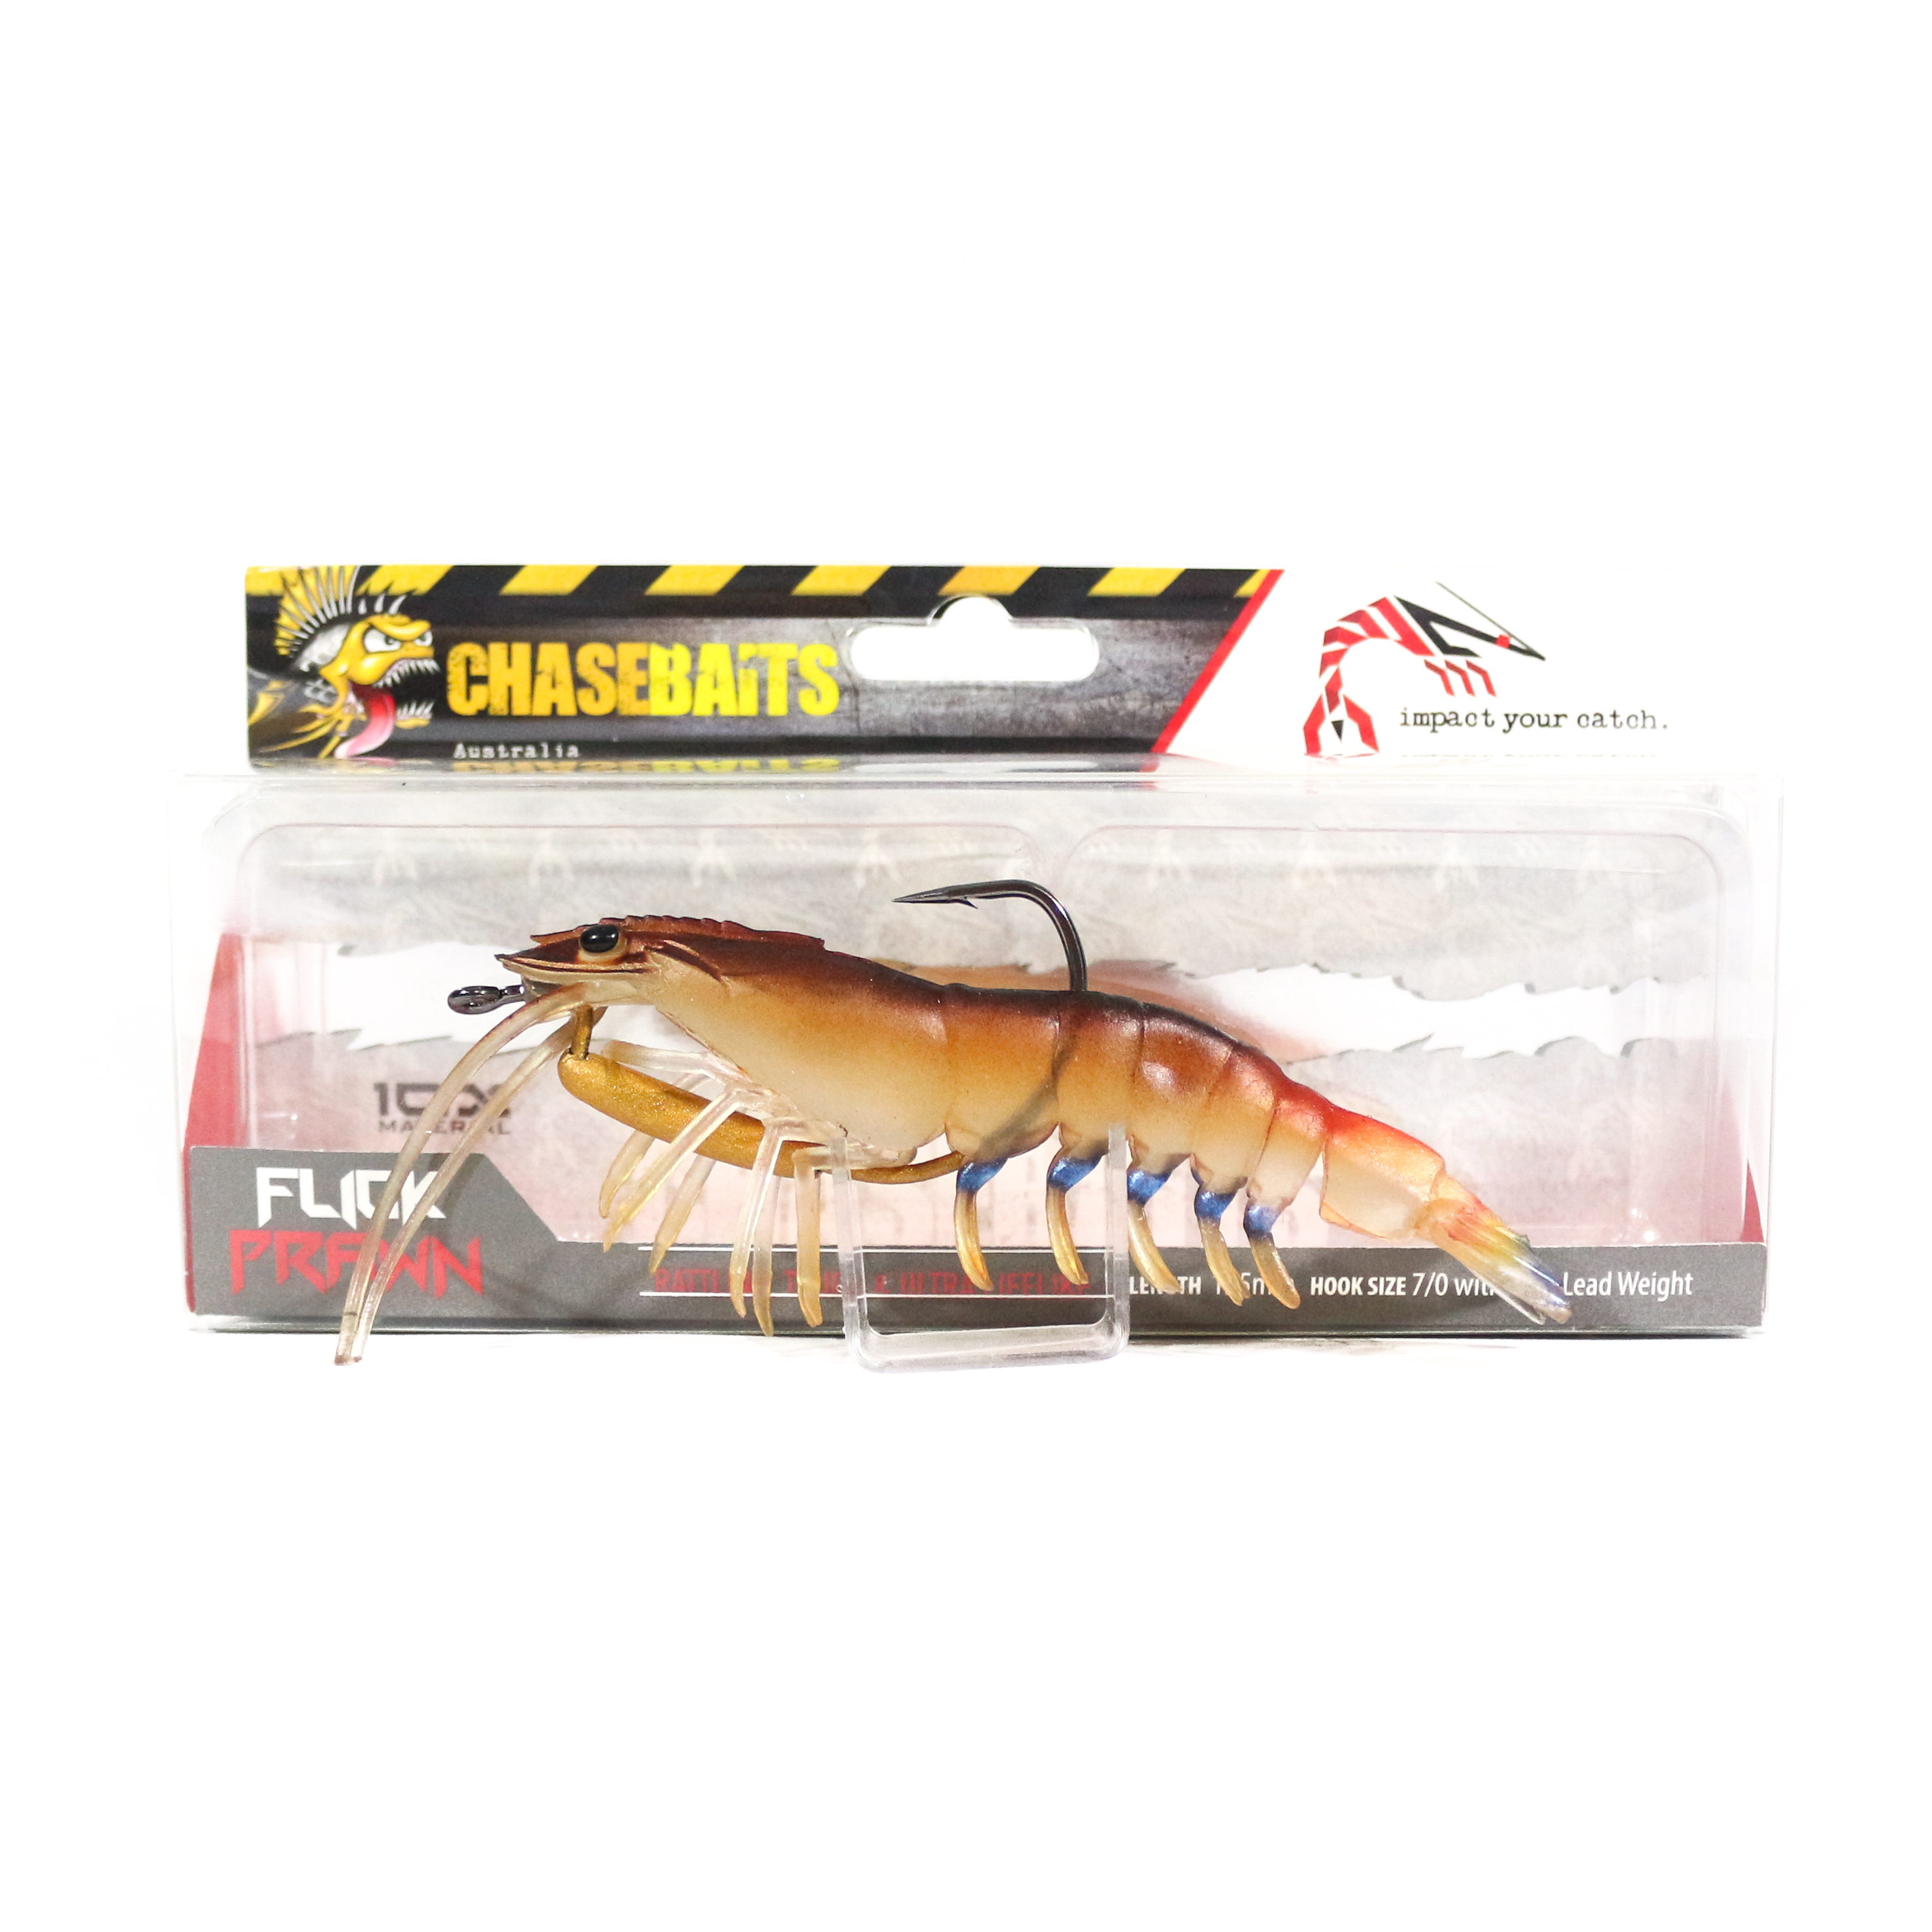 Chase Baits Soft Lure Flick Prawn 125 mm Native Prawn (4826)